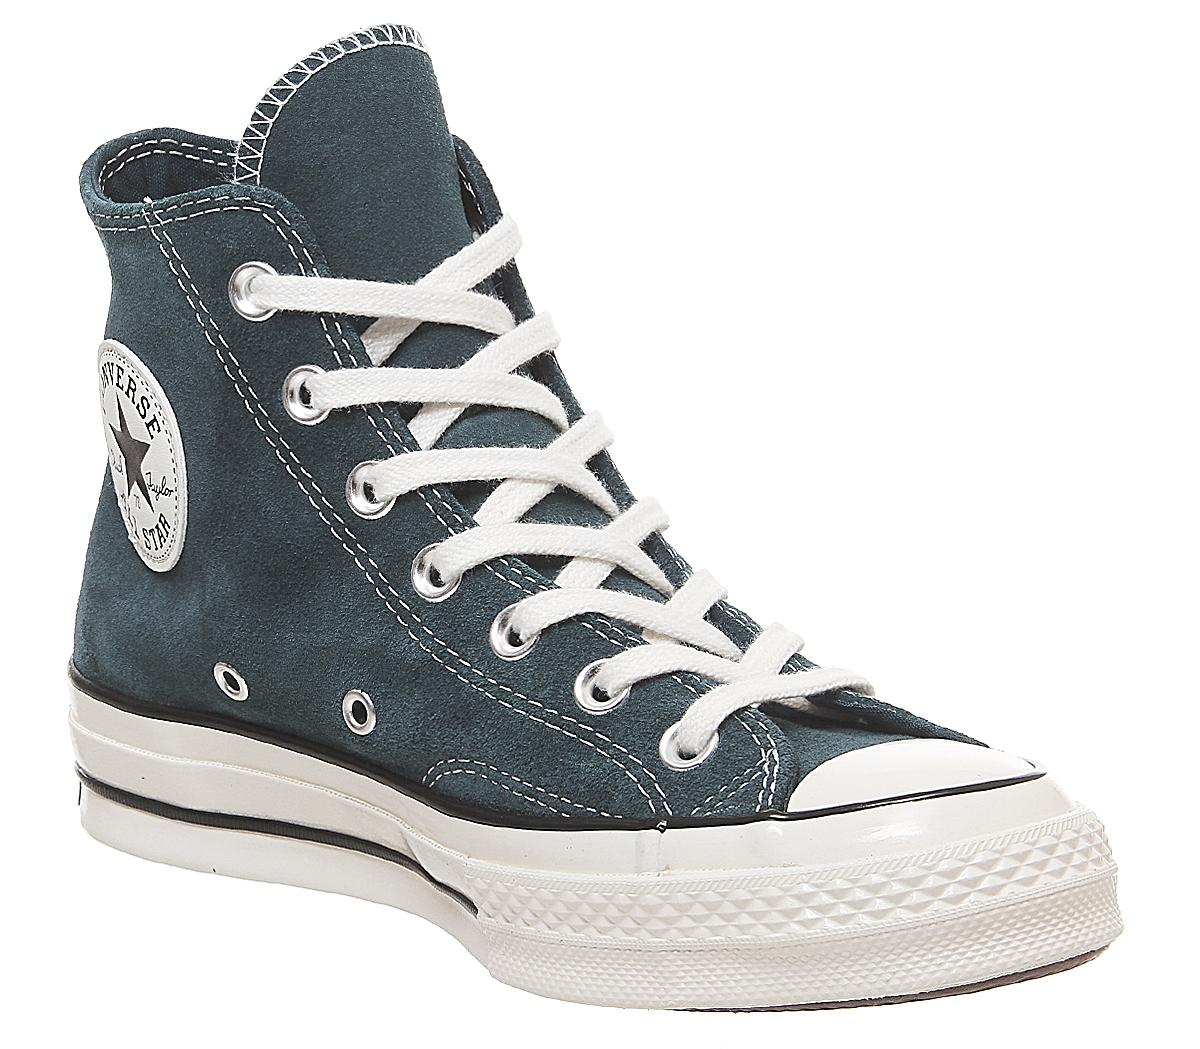 Converse All Star Hi 70s Trainers